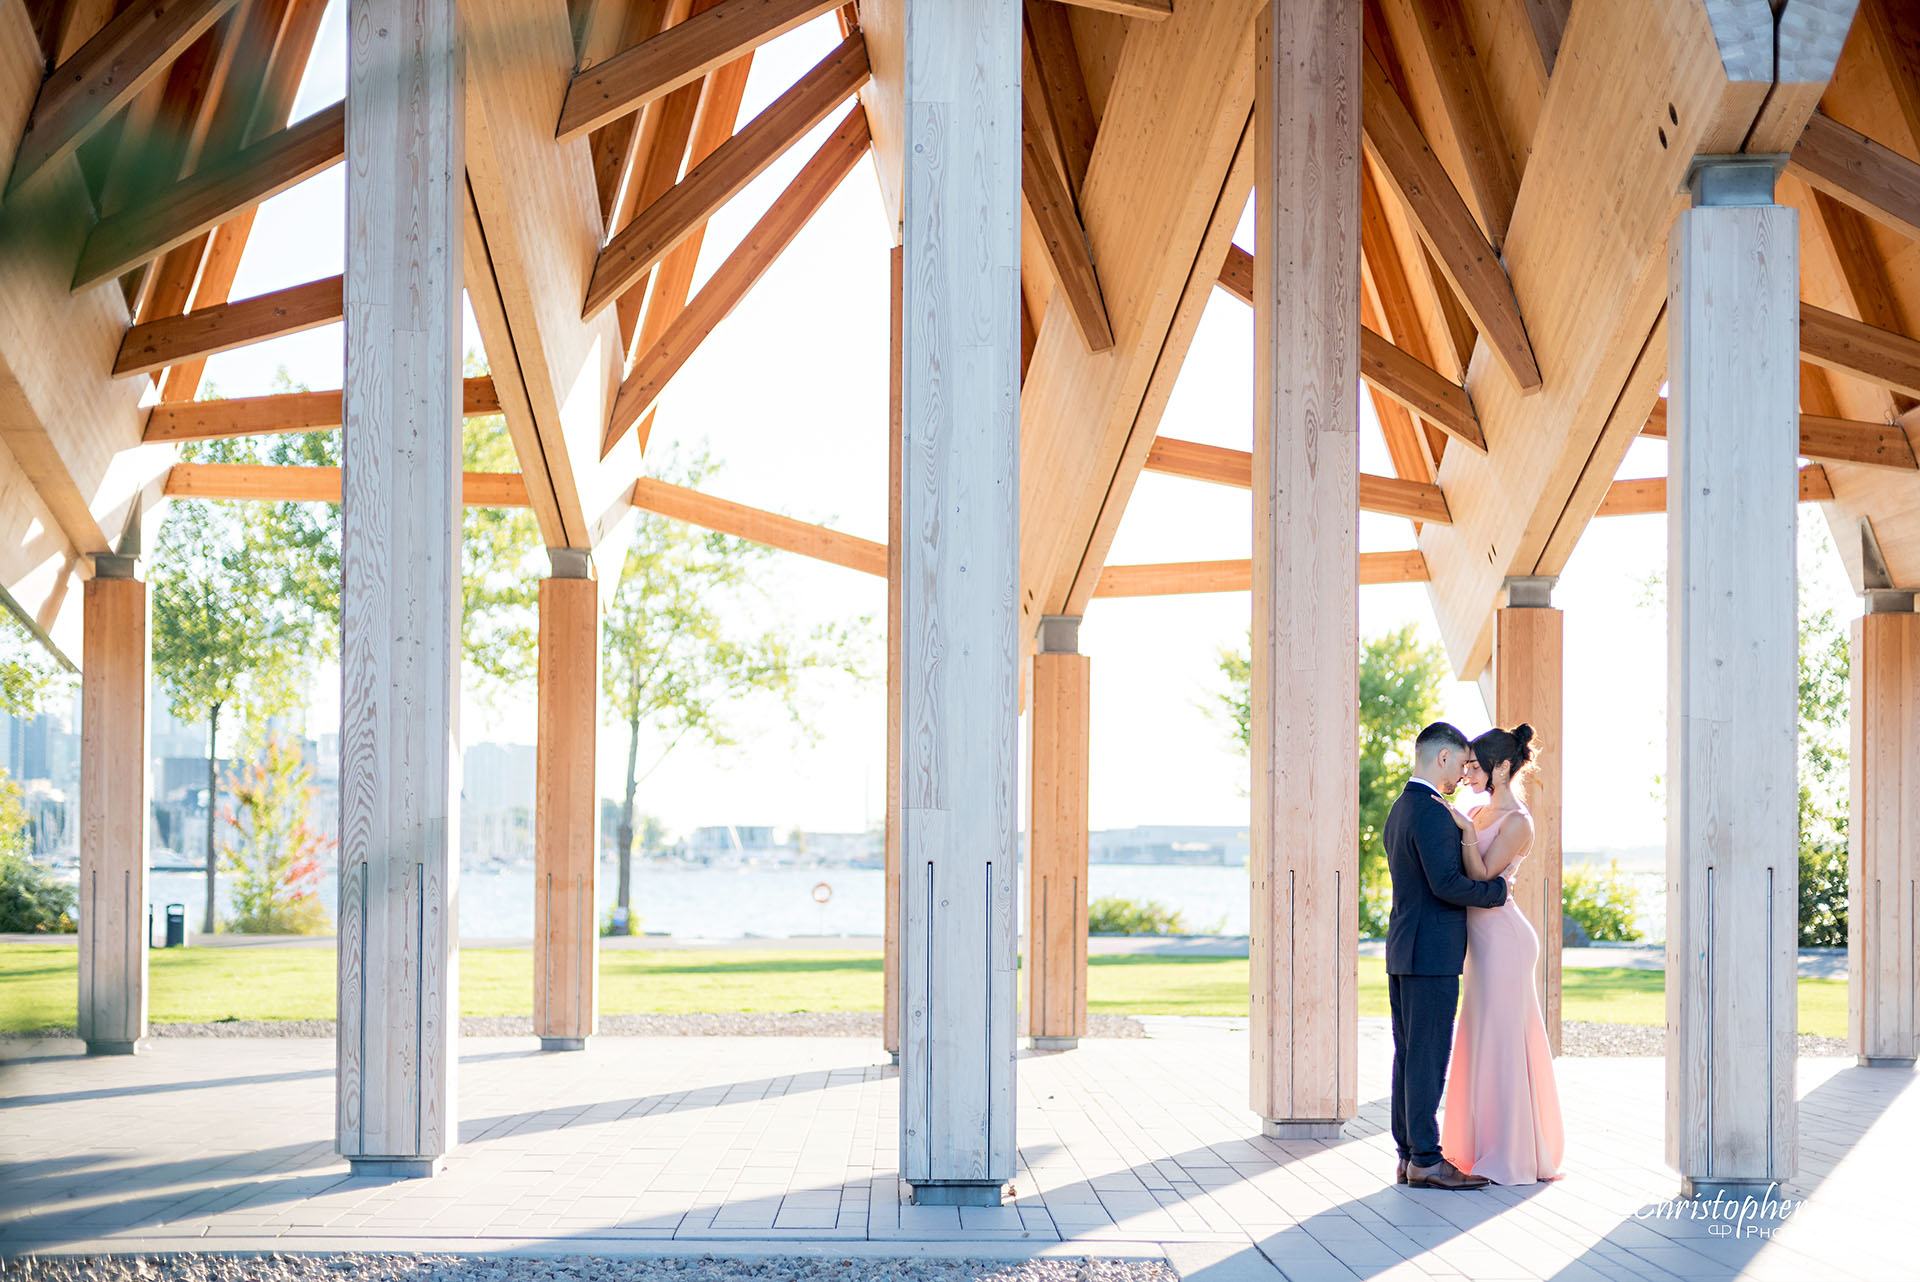 Christopher Luk Trillium Park Ontario Place Waterfront Engagement Session Toronto Wedding Photographer Bride Groom Natural Candid Photojournalistic Wood Evergreen Pavilion Landscape Hug